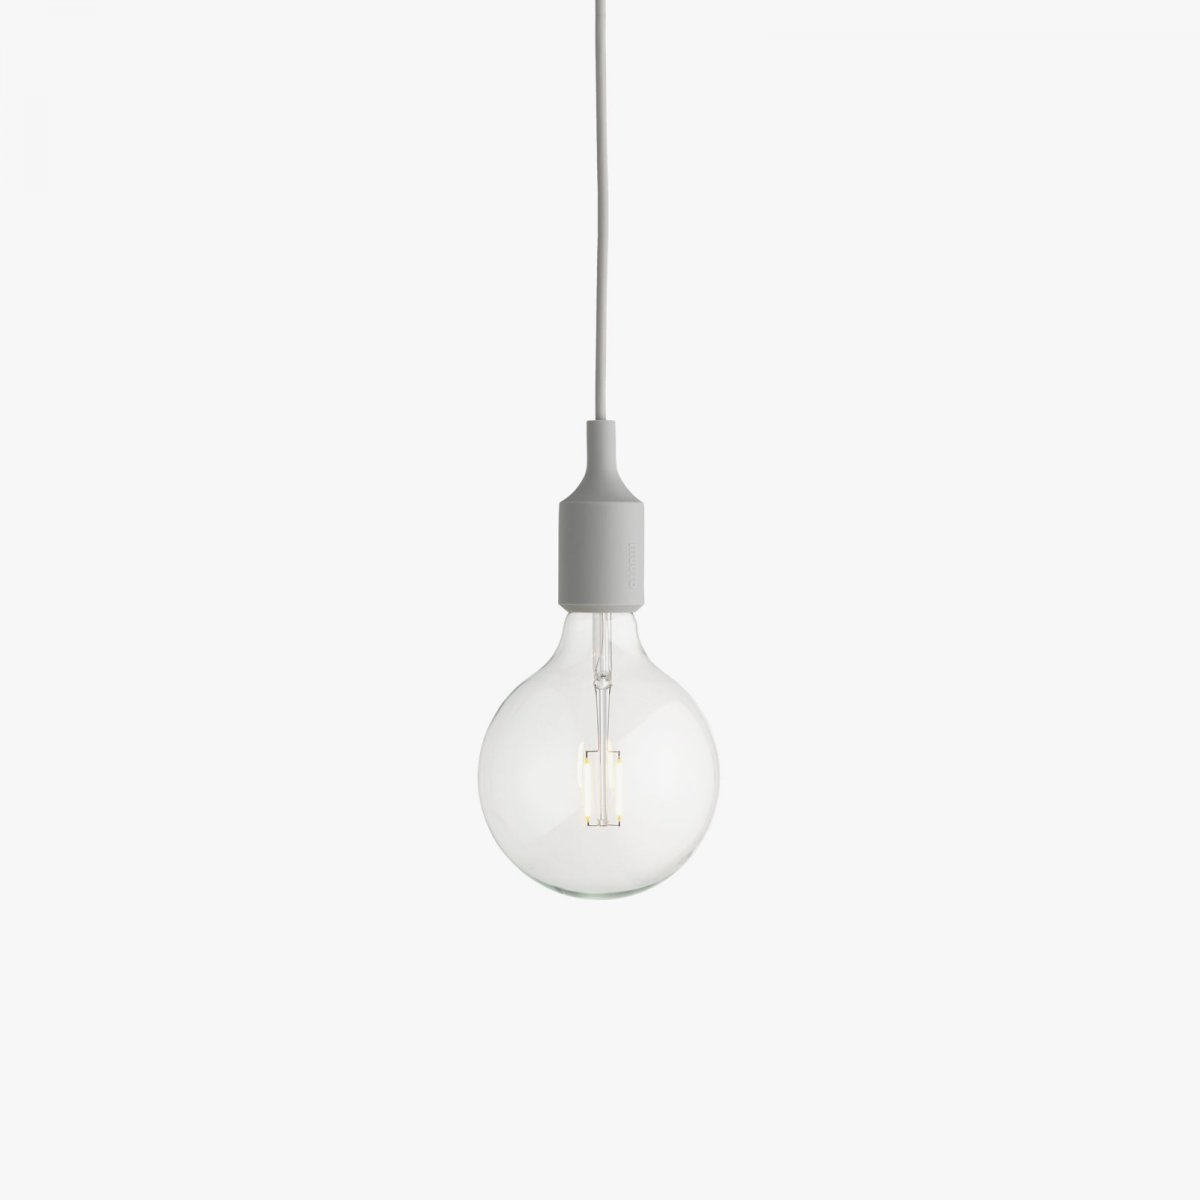 E27 Pendant Lamp, gray.